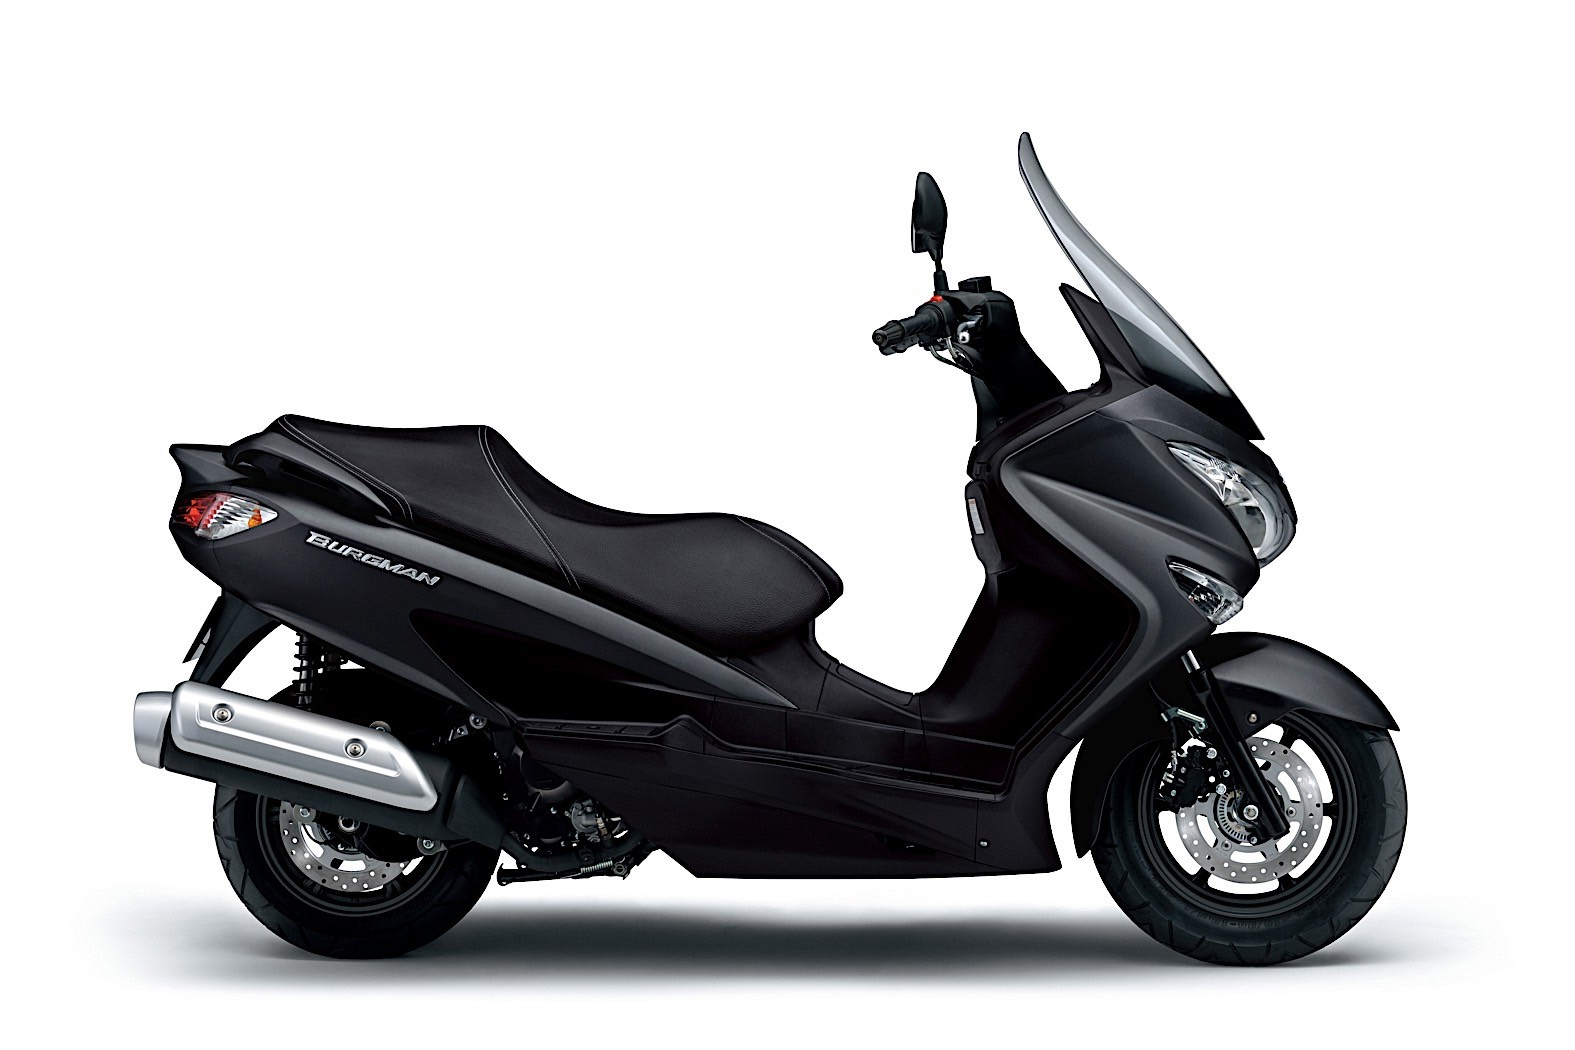 2019-suzuki-motorcycles-shine-in-new-colors-at-the-motorcycle-live-41